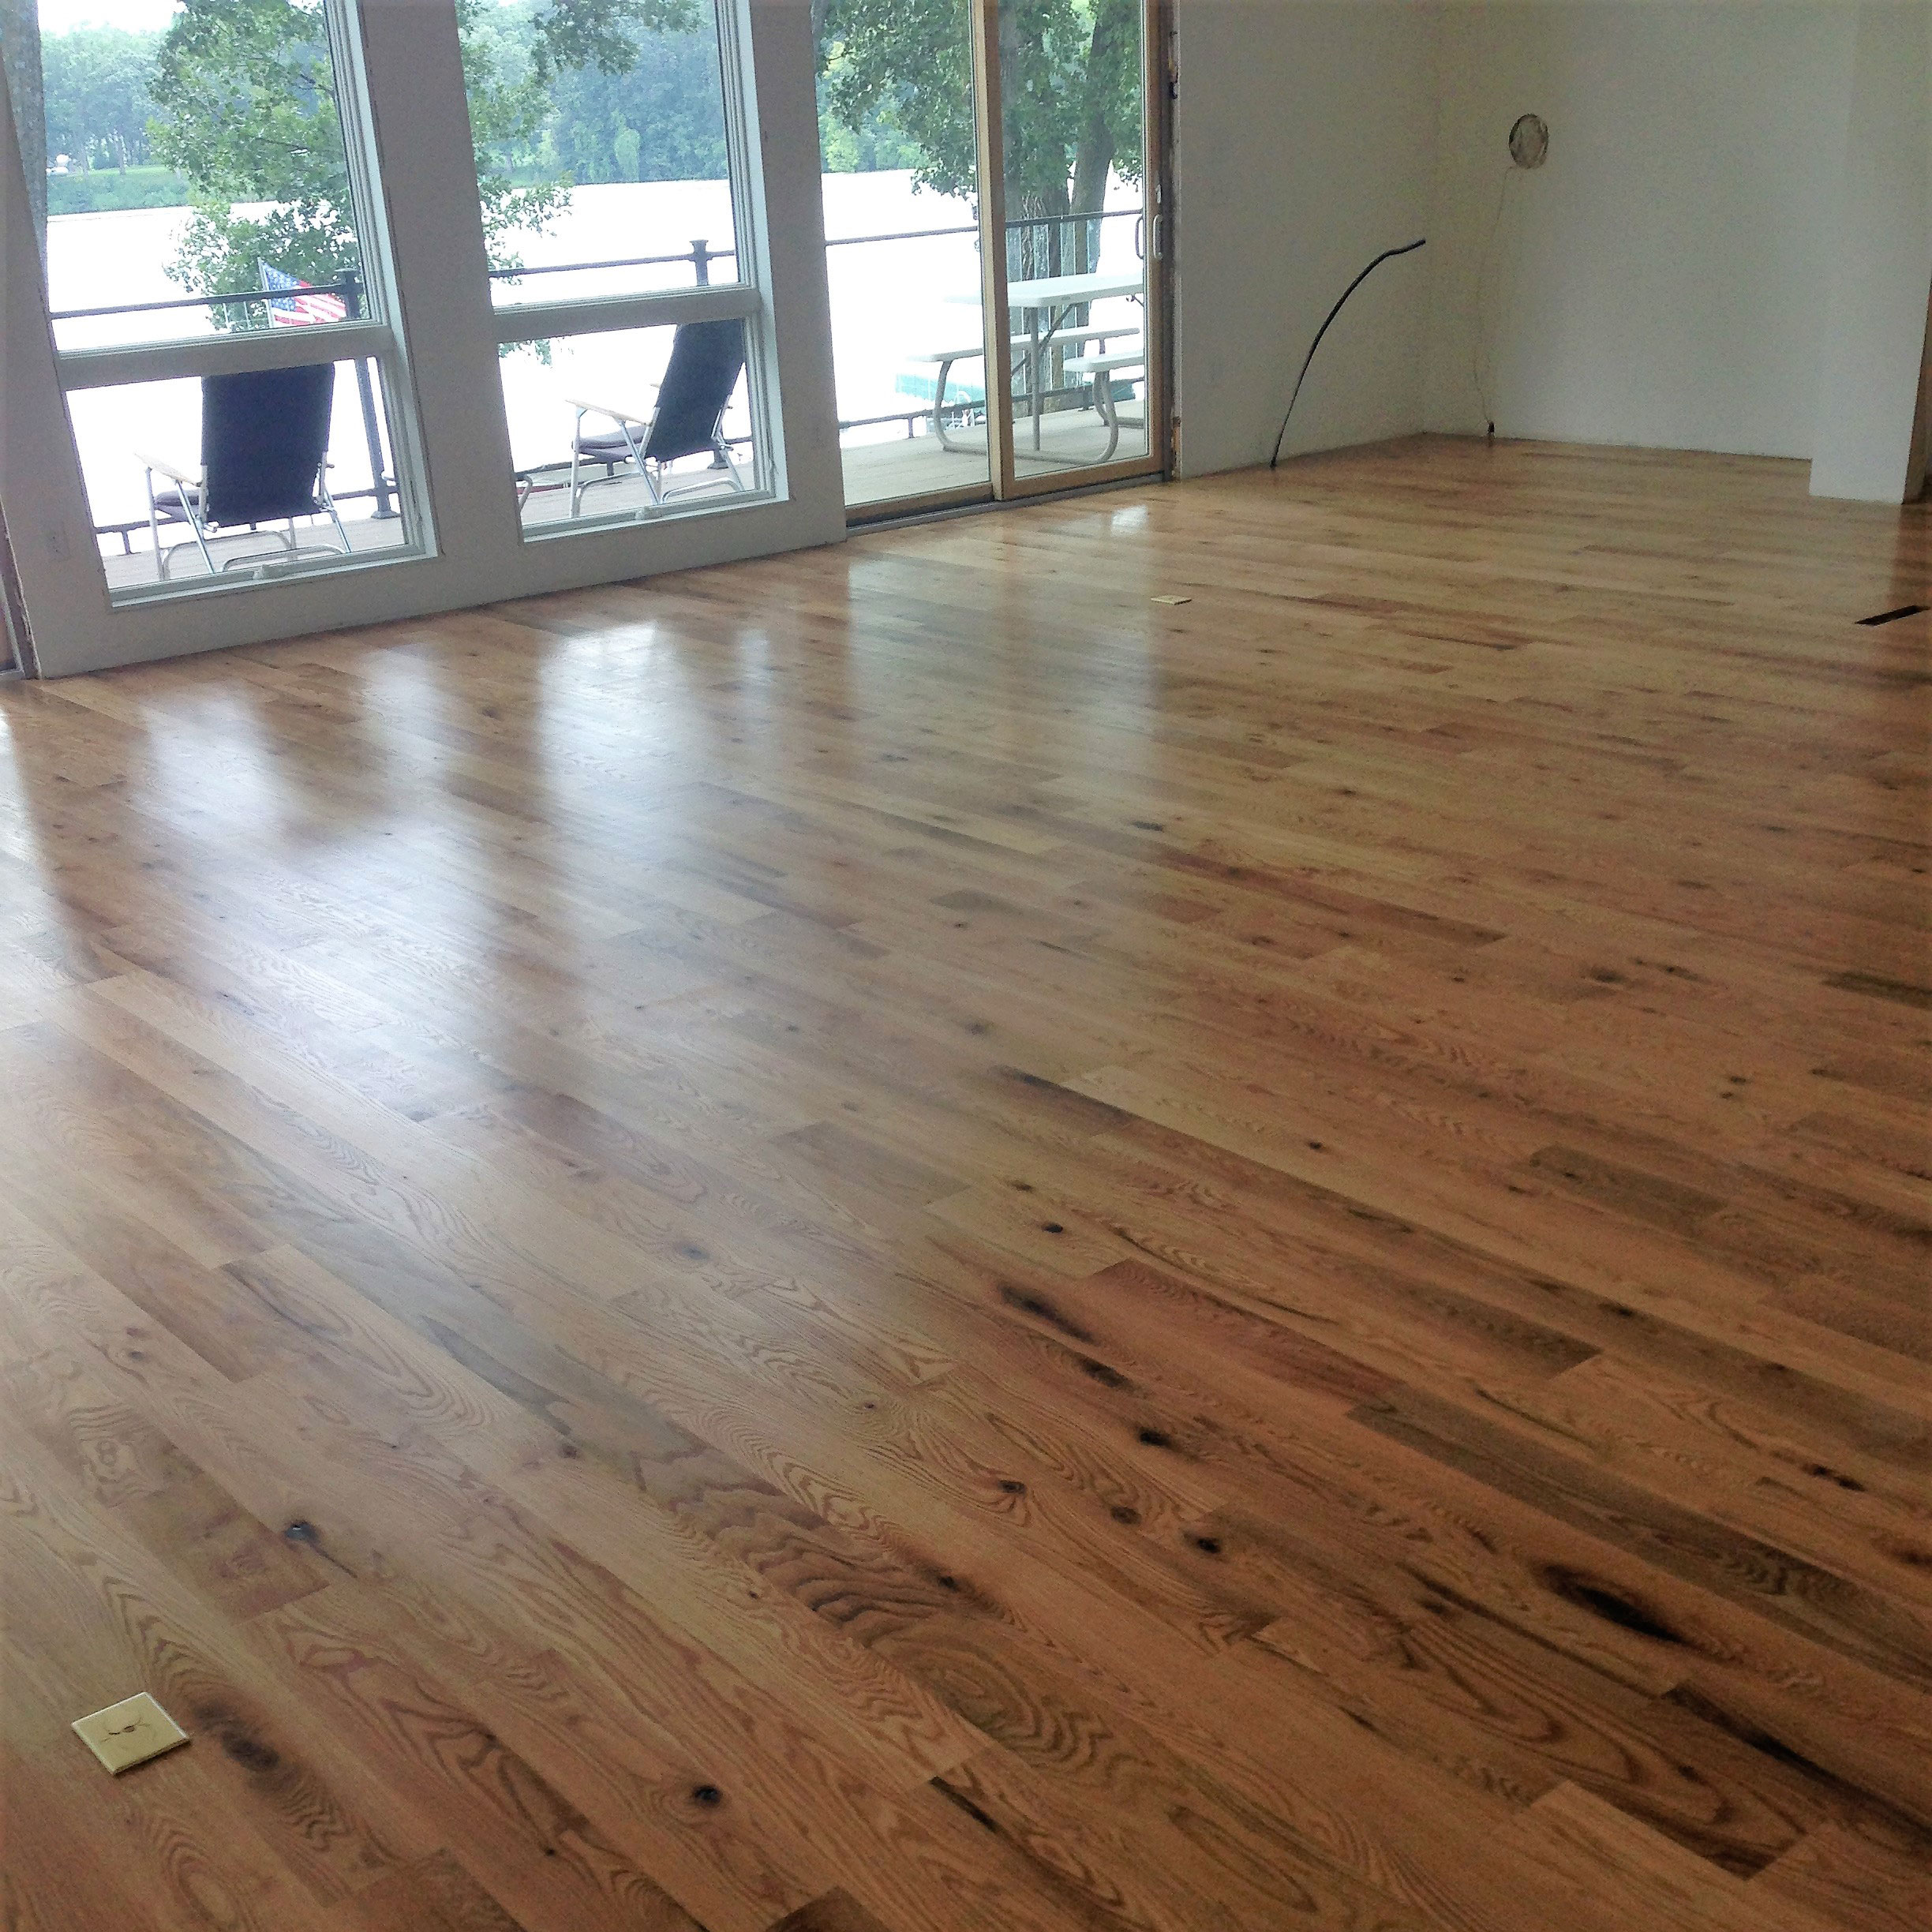 Refinishing hardwood floors sanding and refinishing old for Hardwood floors quality